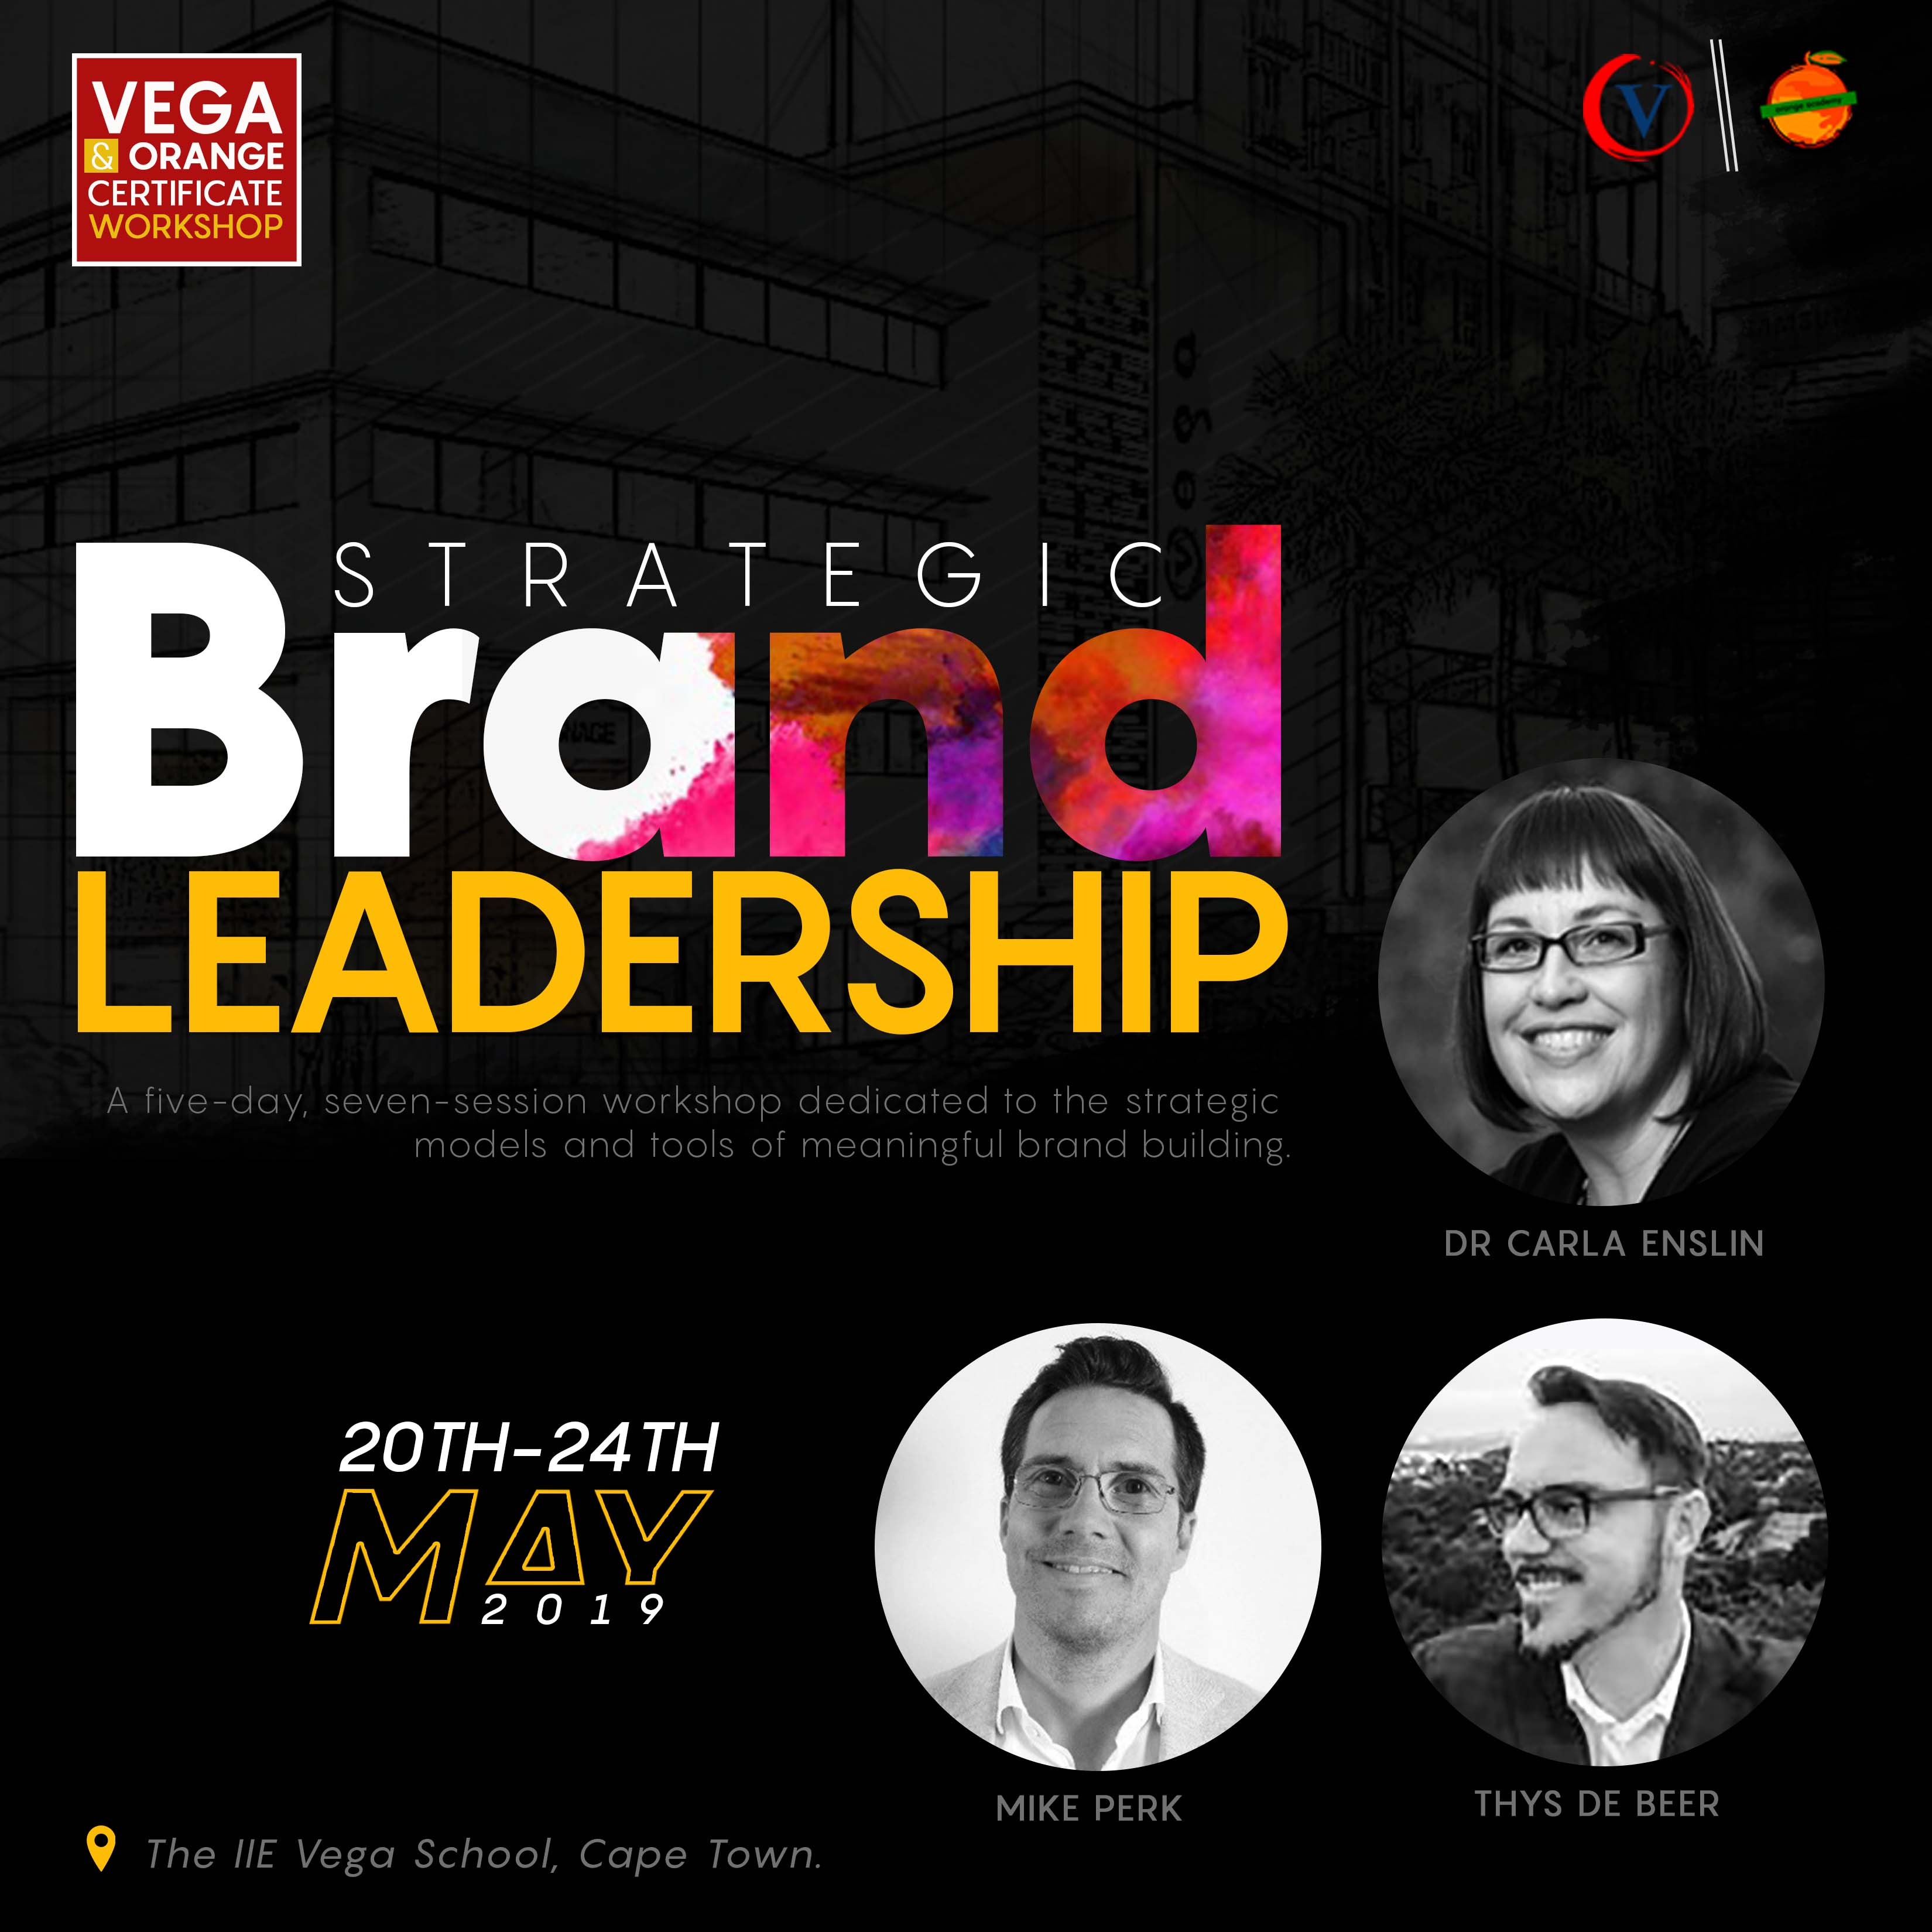 Don't miss this Opportunity to Learn about the Tools for Brand Building in South Africa | May 20th-24th